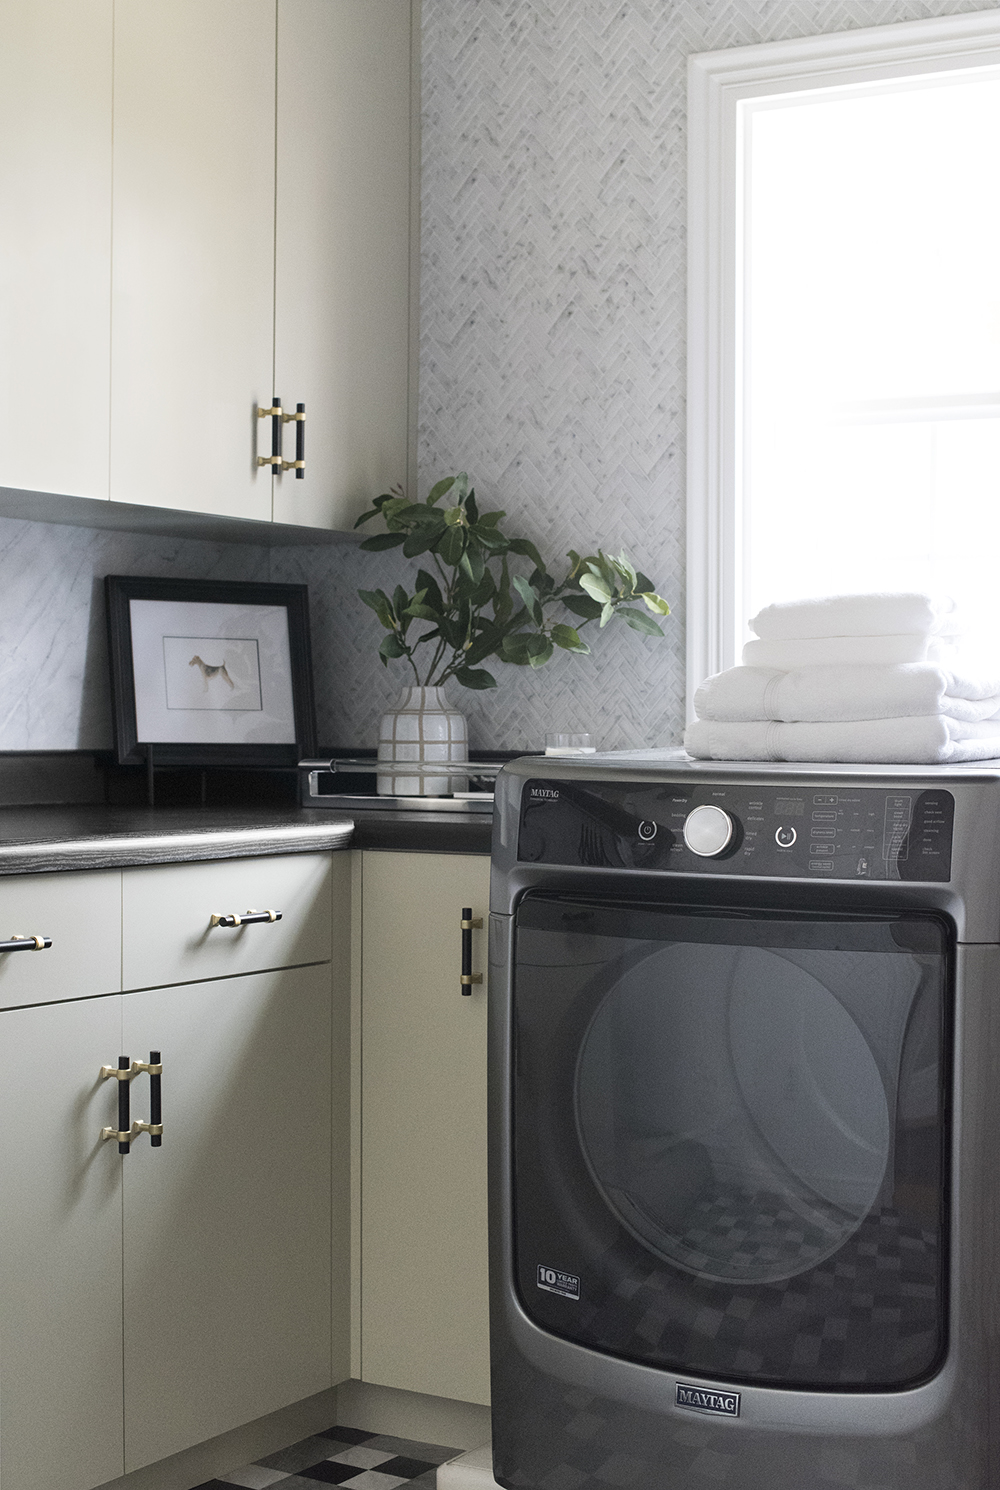 Budget Friendly Laundry Room Makeover - roomfortuesday.com